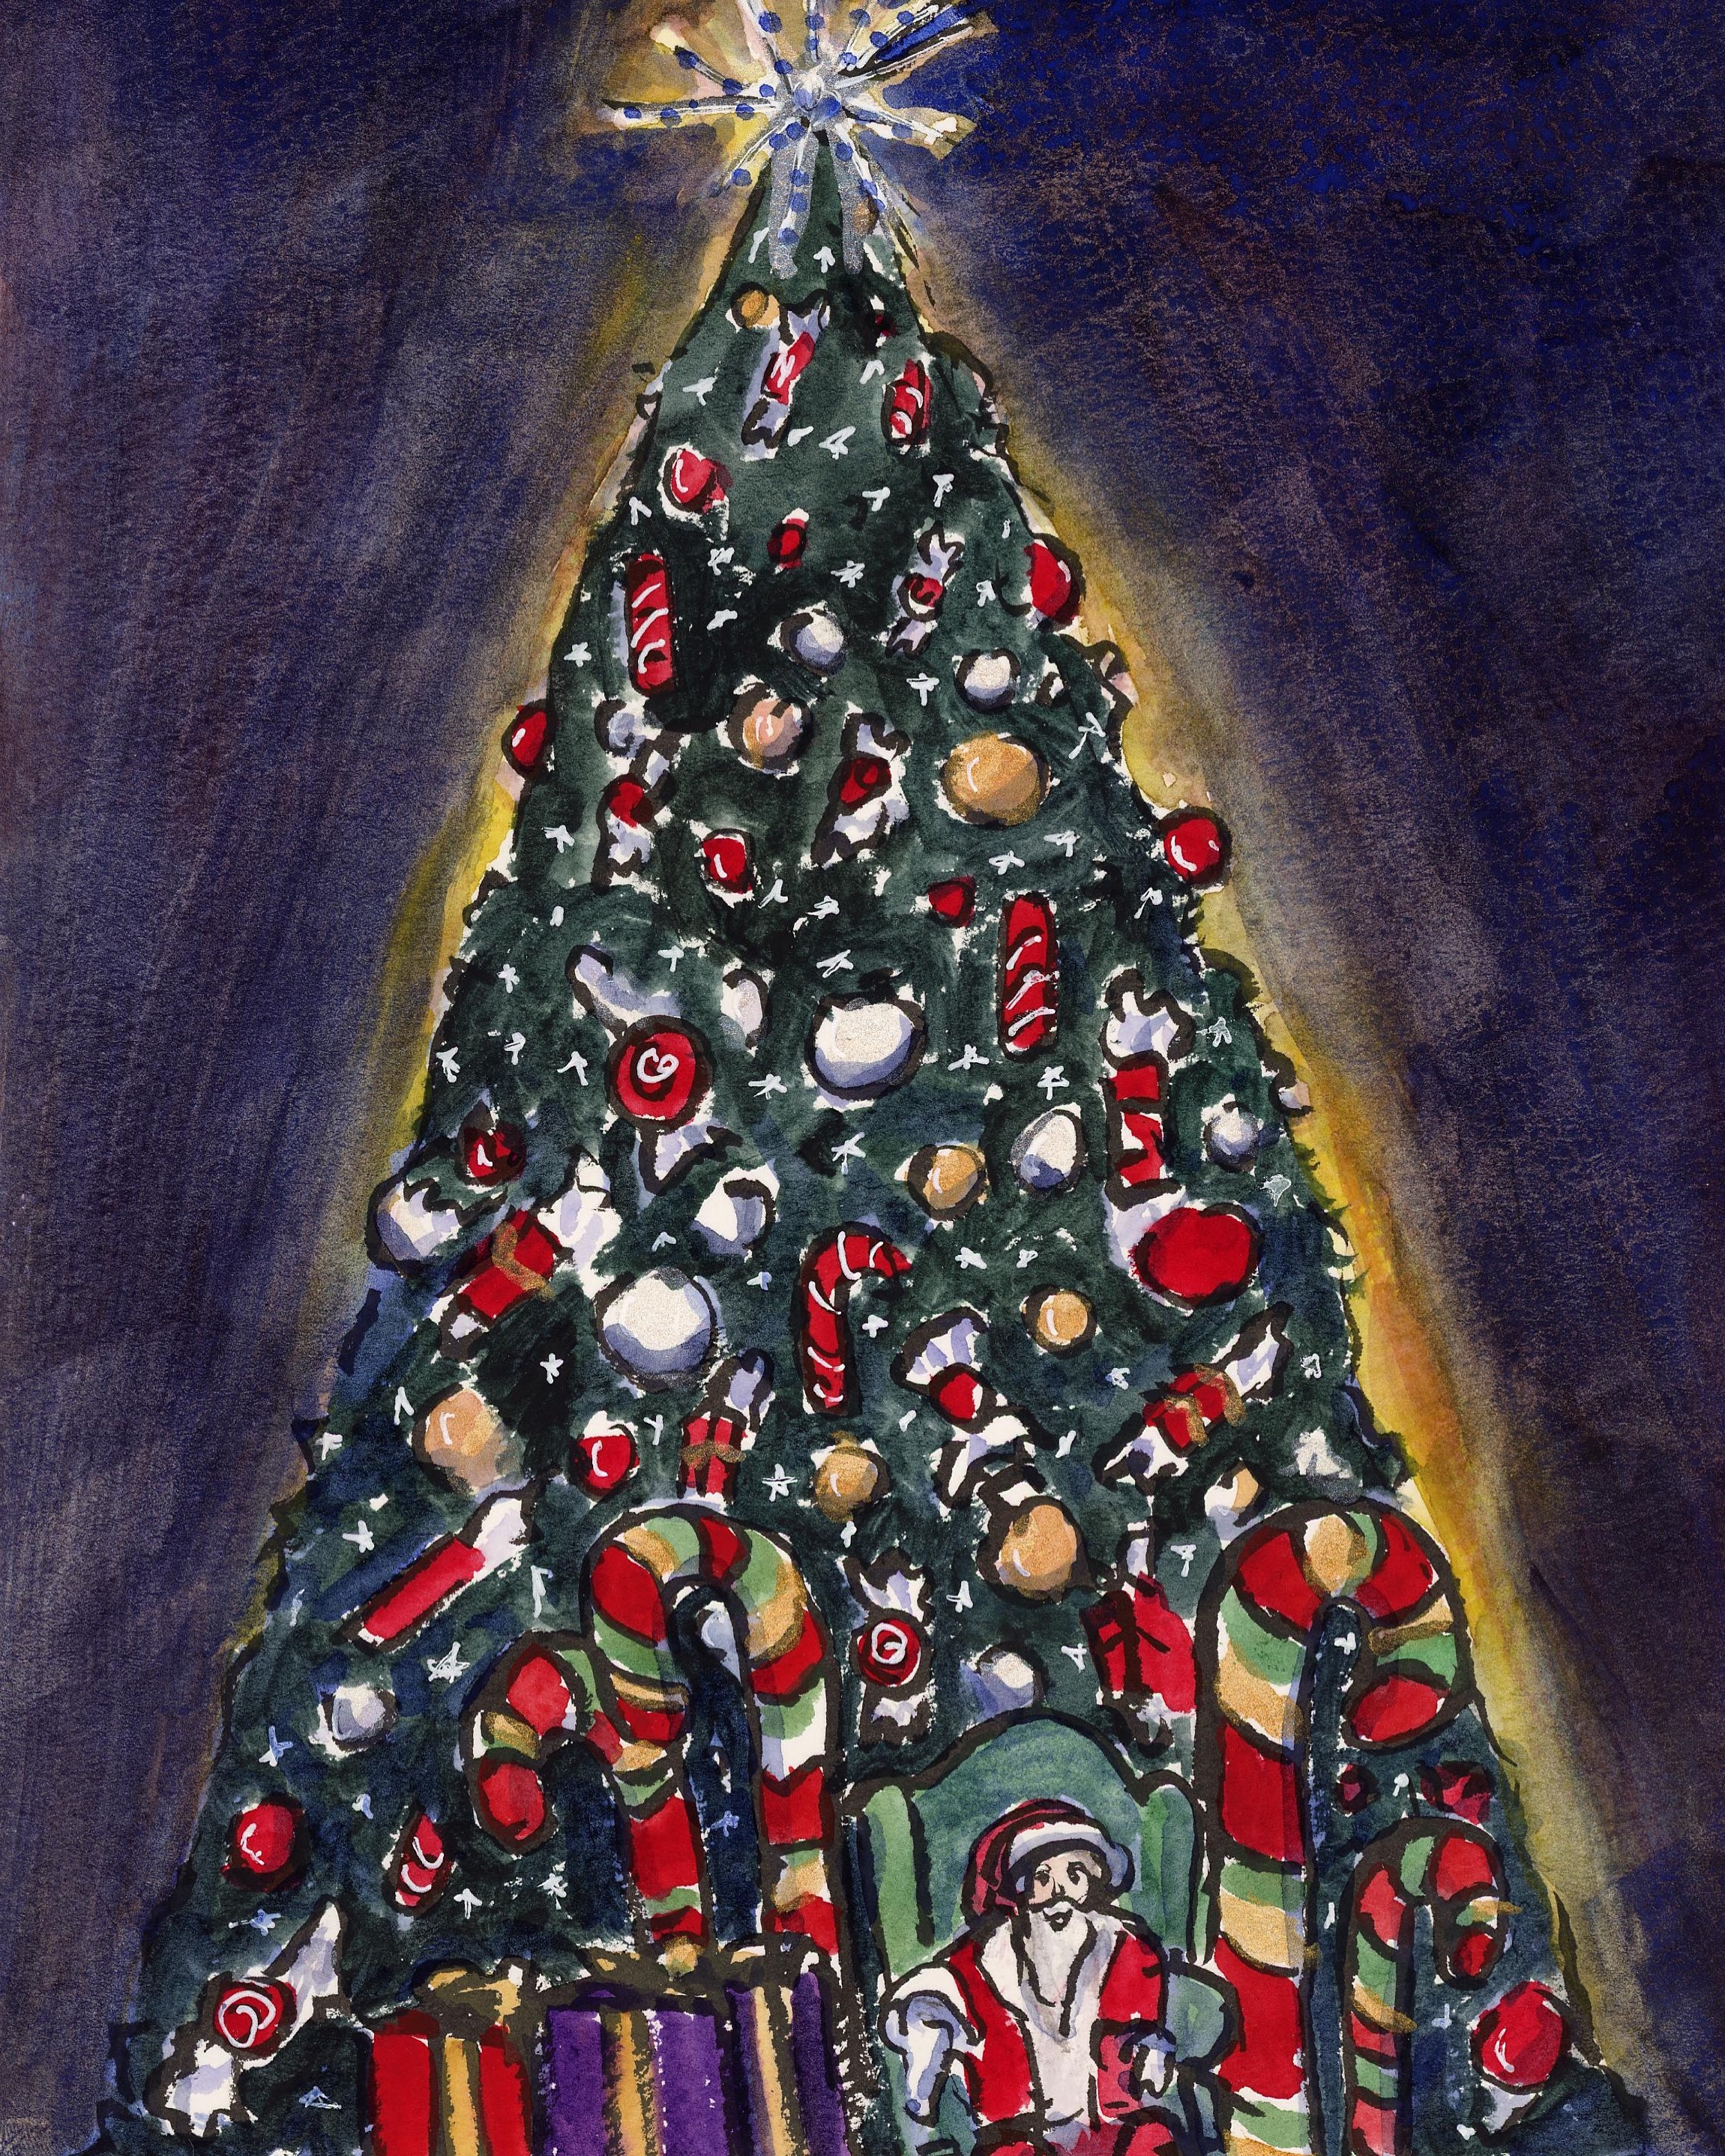 This epic Christmas tree was found in River Park Square Mall. It is SO TALL! Santa was busy with quite a line of children excited to see him and his cheer and kindness warmed my heart. I sketched this sitting next to the escalator in the entryway and for a while, my view was blocked by a high school band group waiting to perform Christmas music. It's a busy season!